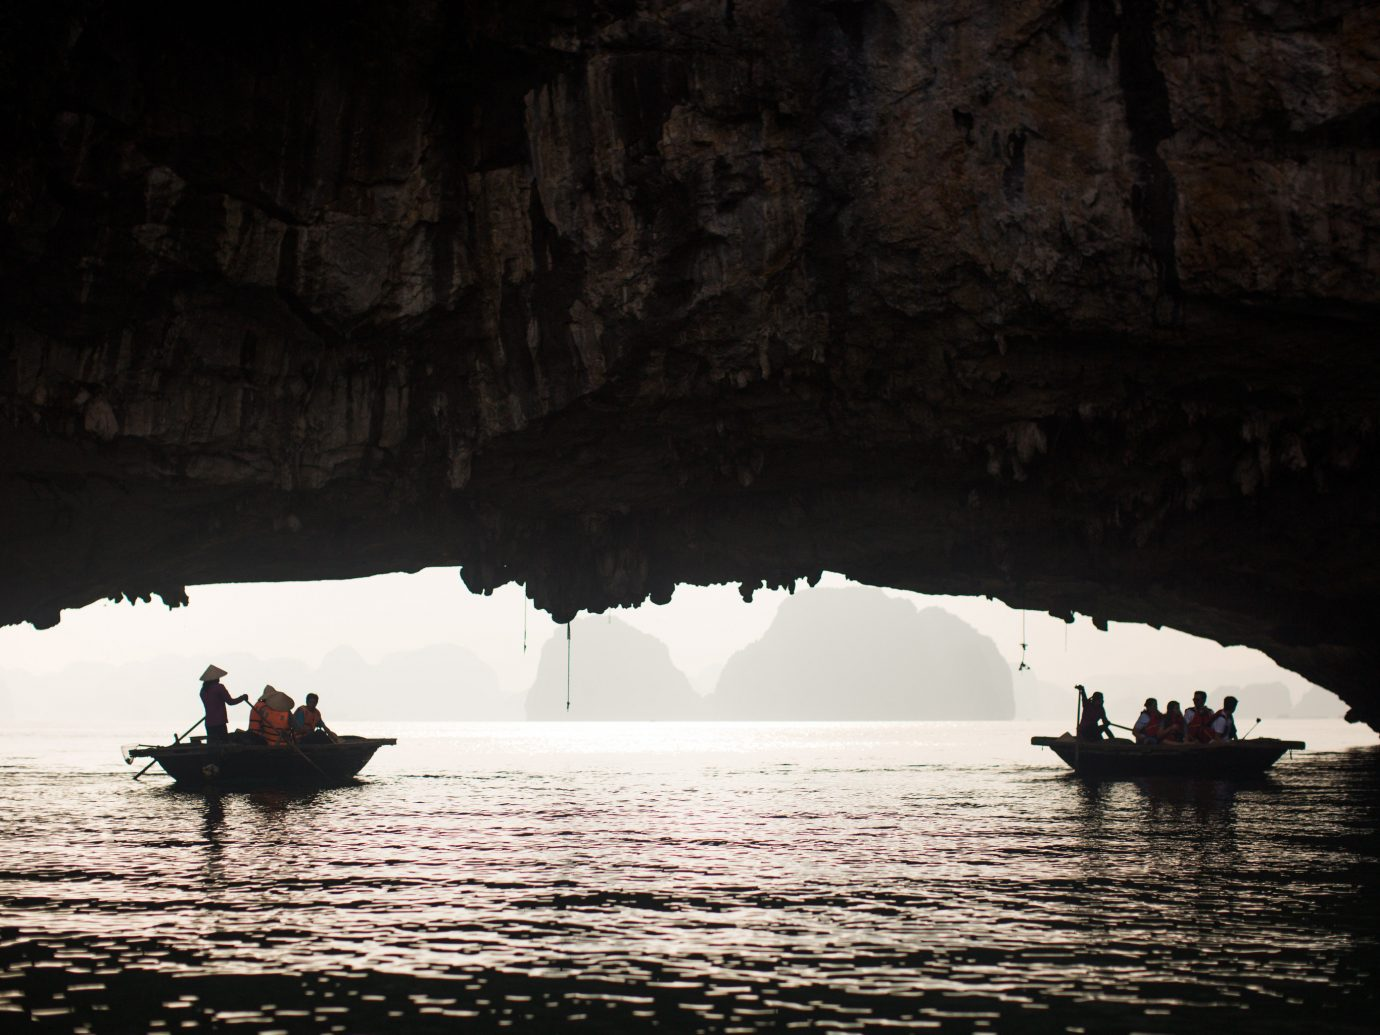 water outdoor Nature cave Boat geographical feature landform sea cave darkness reflection Sea formation bay distance